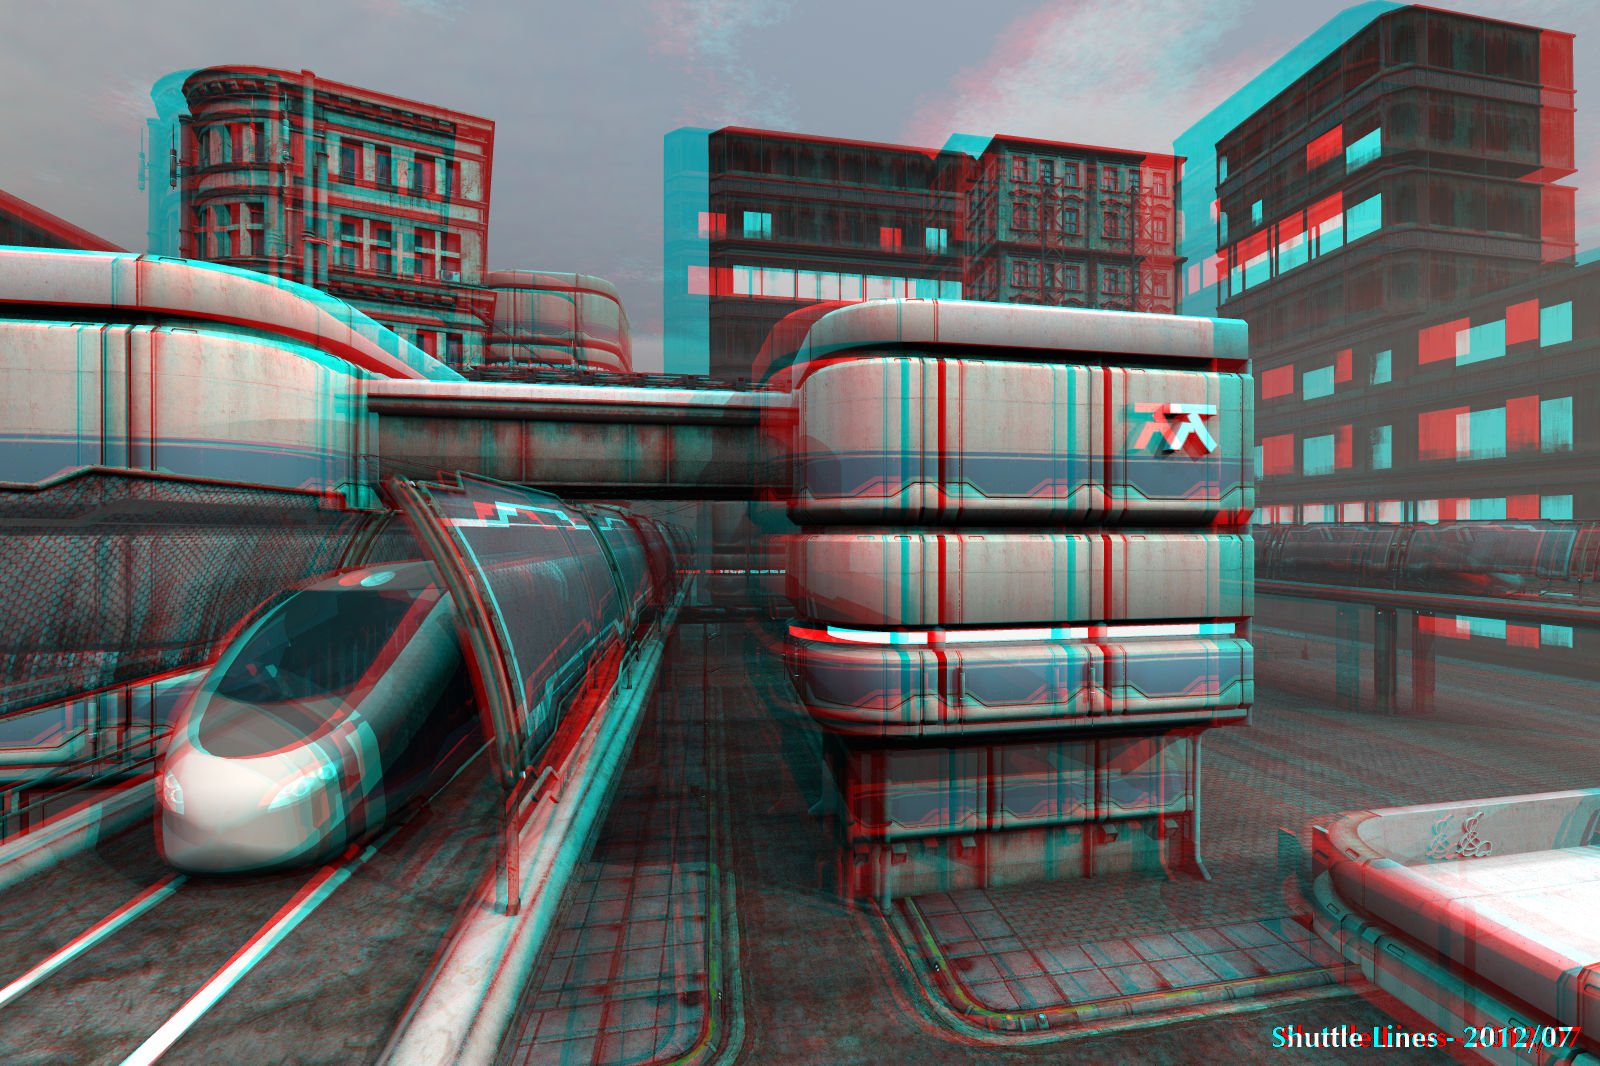 Shuttle Lines Anaglyph